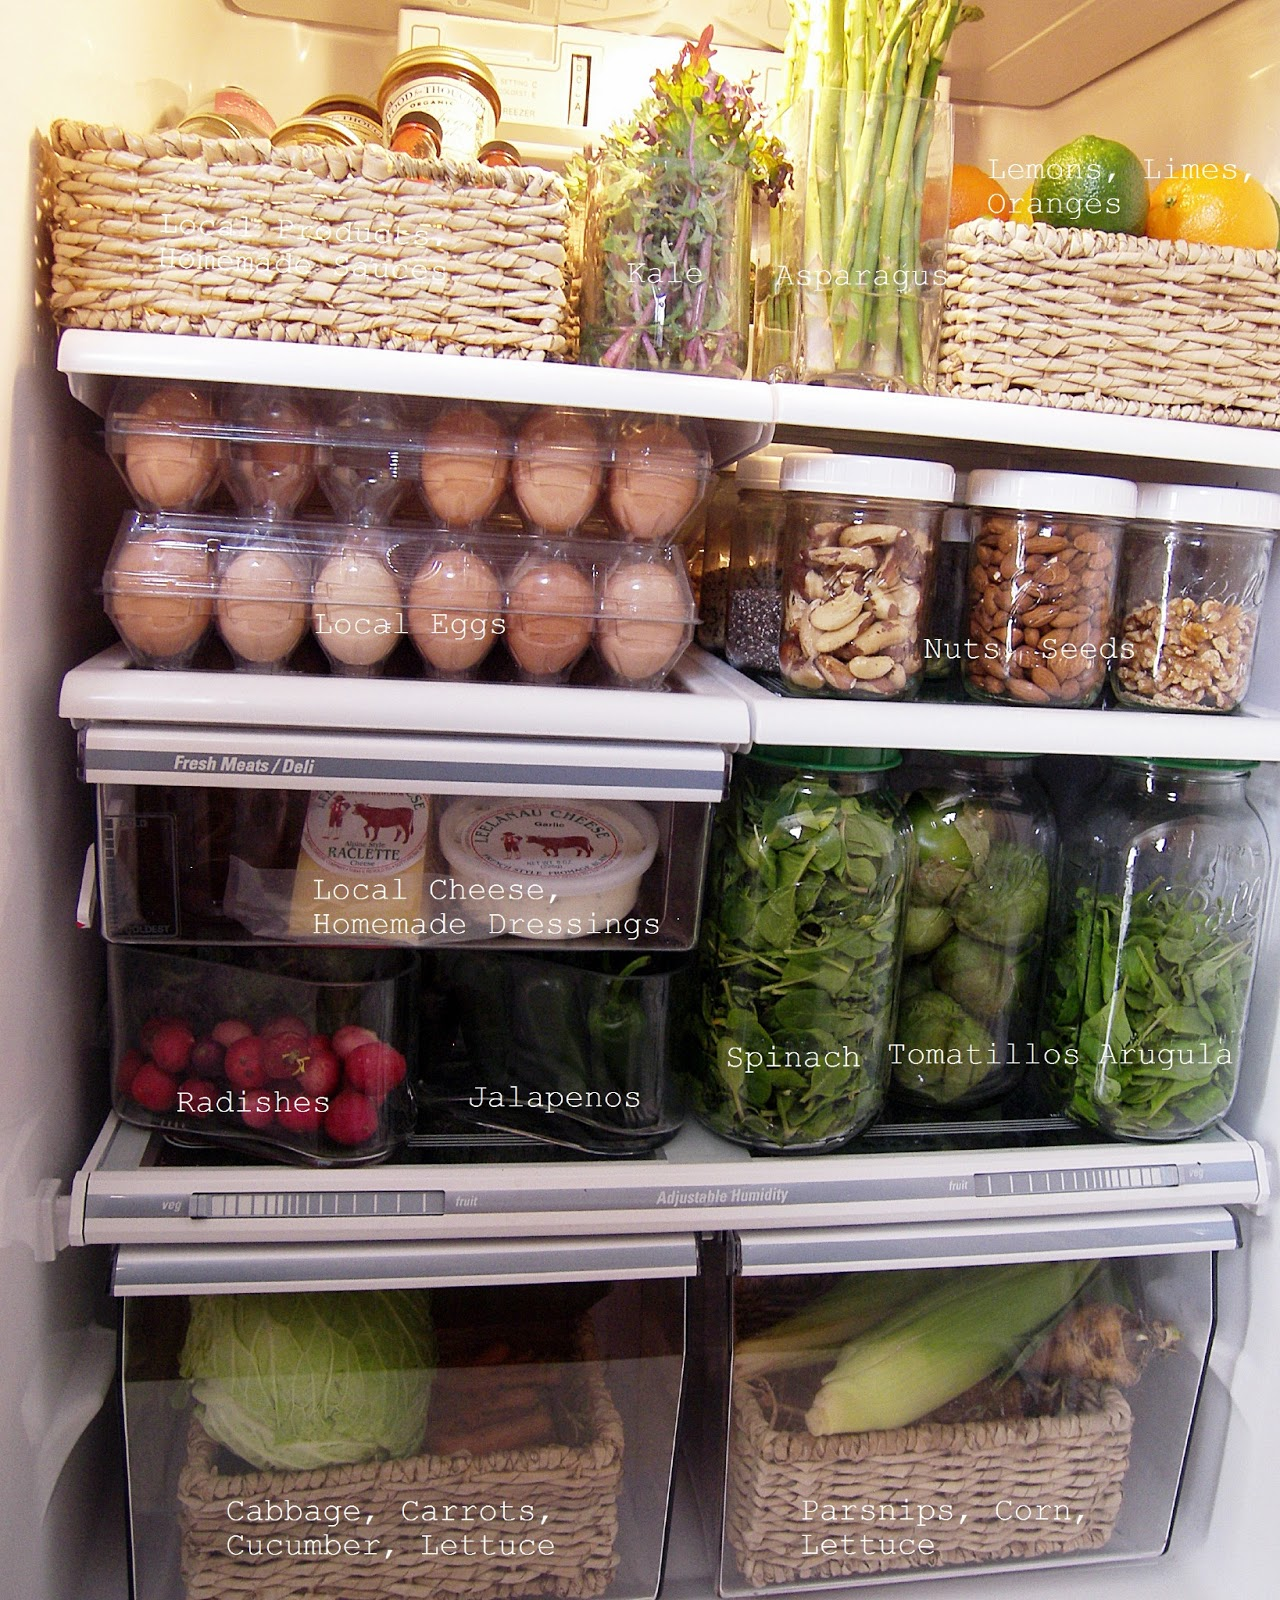 image of open fridge spring kitchen cleanup